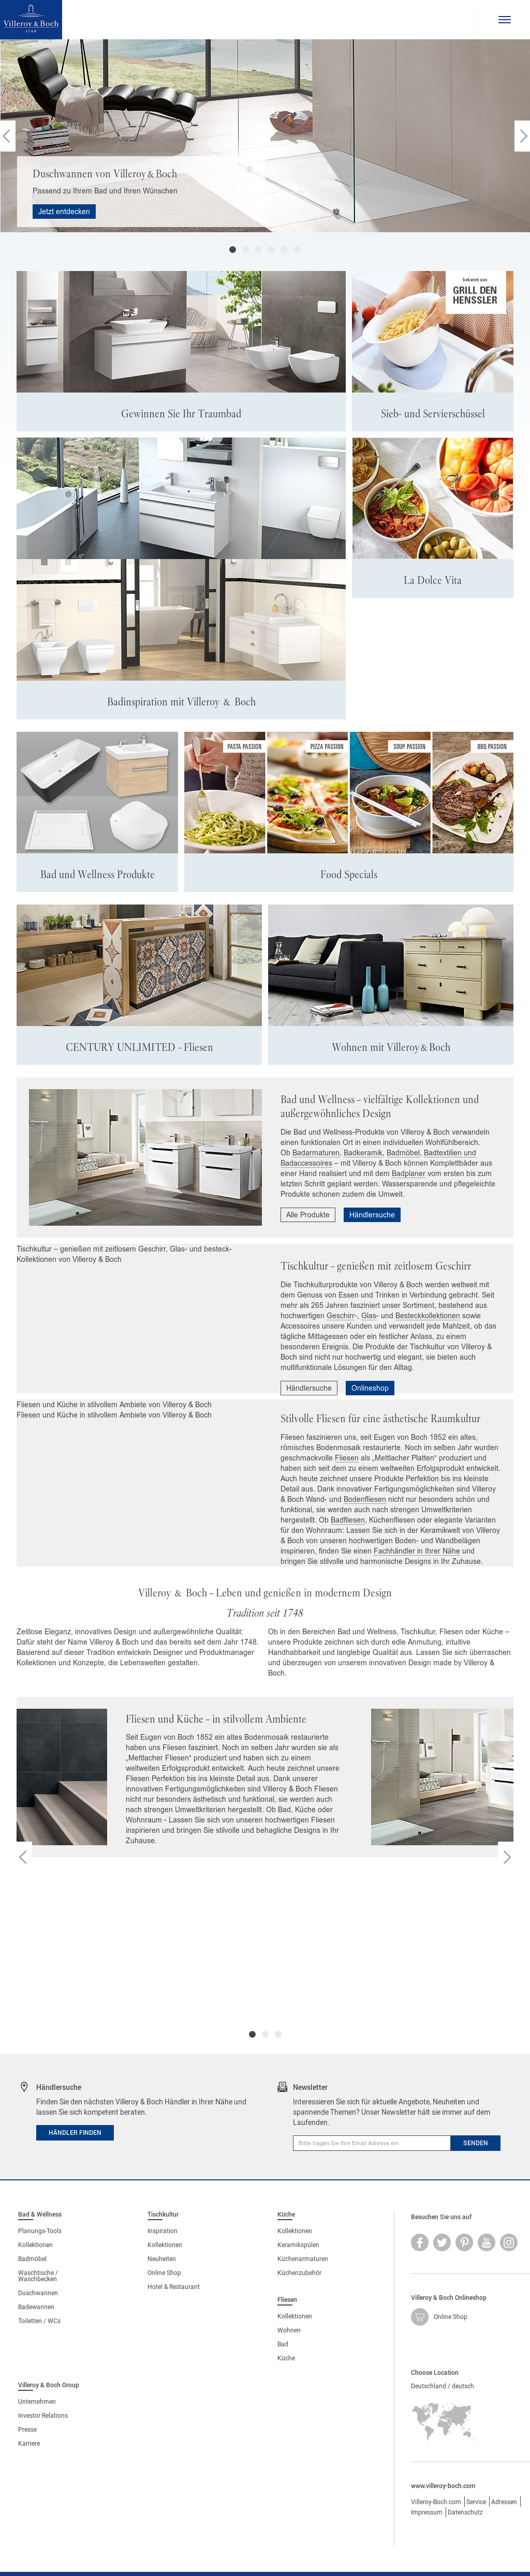 Villeroy & Boch Competitors, Revenue and Employees - Owler Company ...